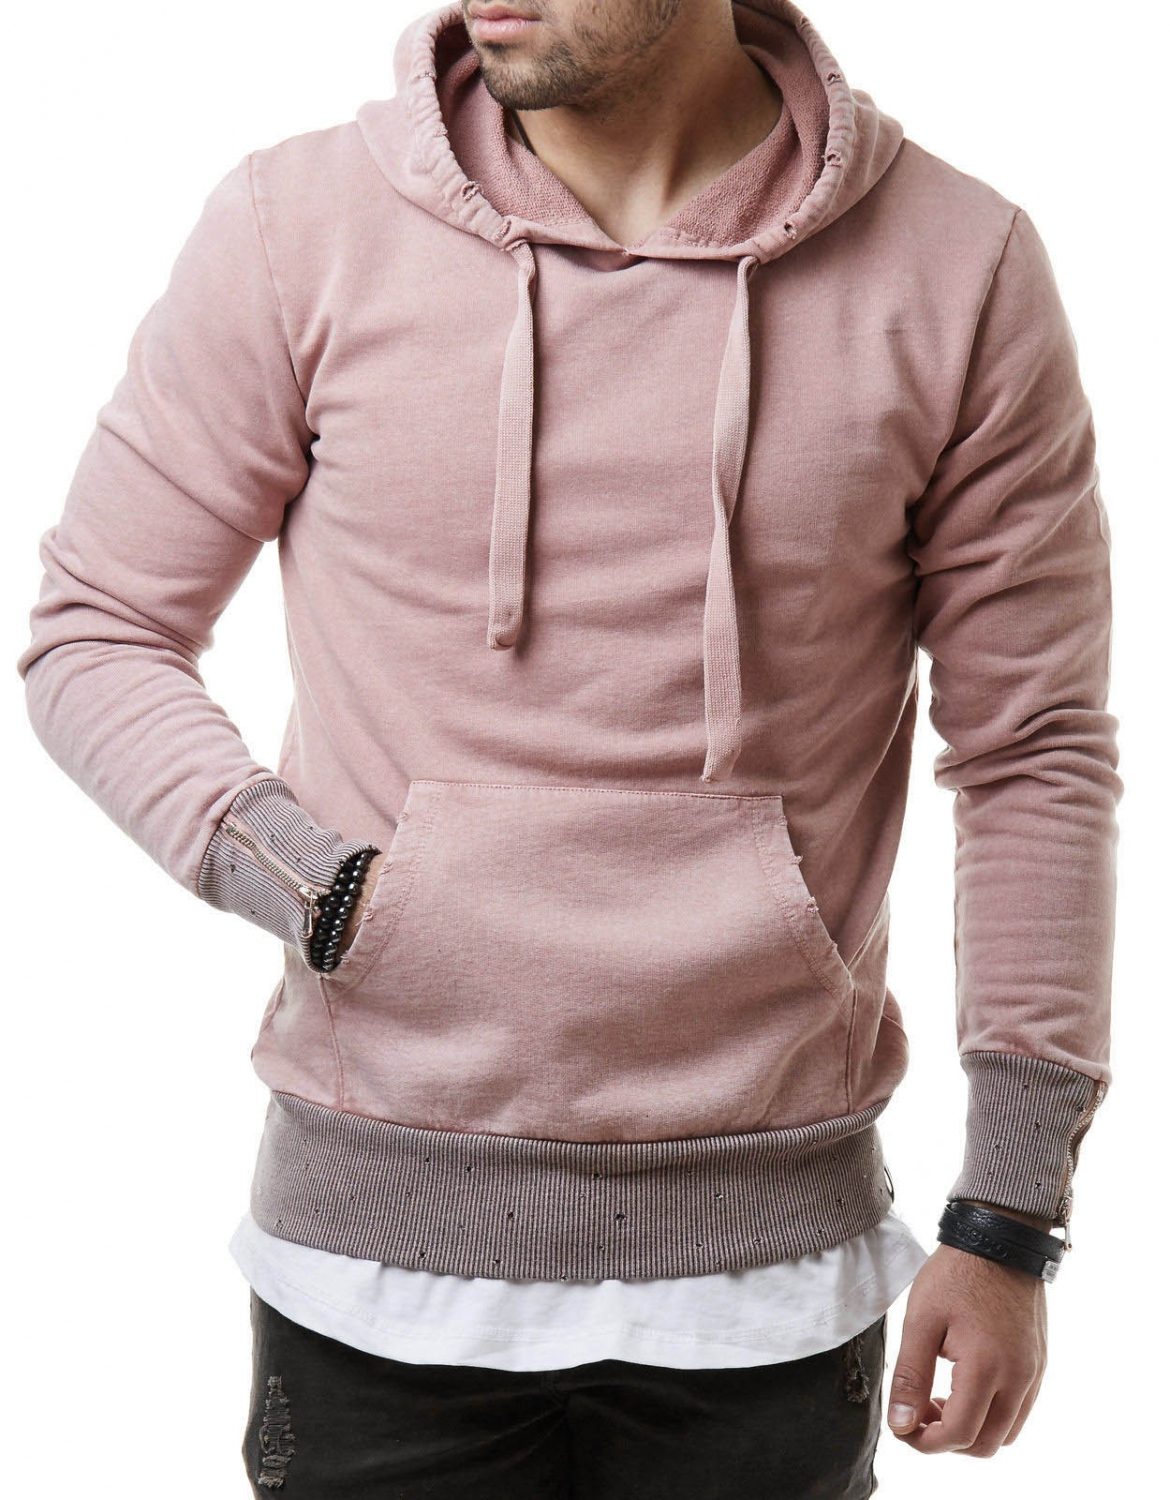 e7a1ab11815cf sweat homme rose,Sweat 脿 capuche d茅chir茅 homme rose 264